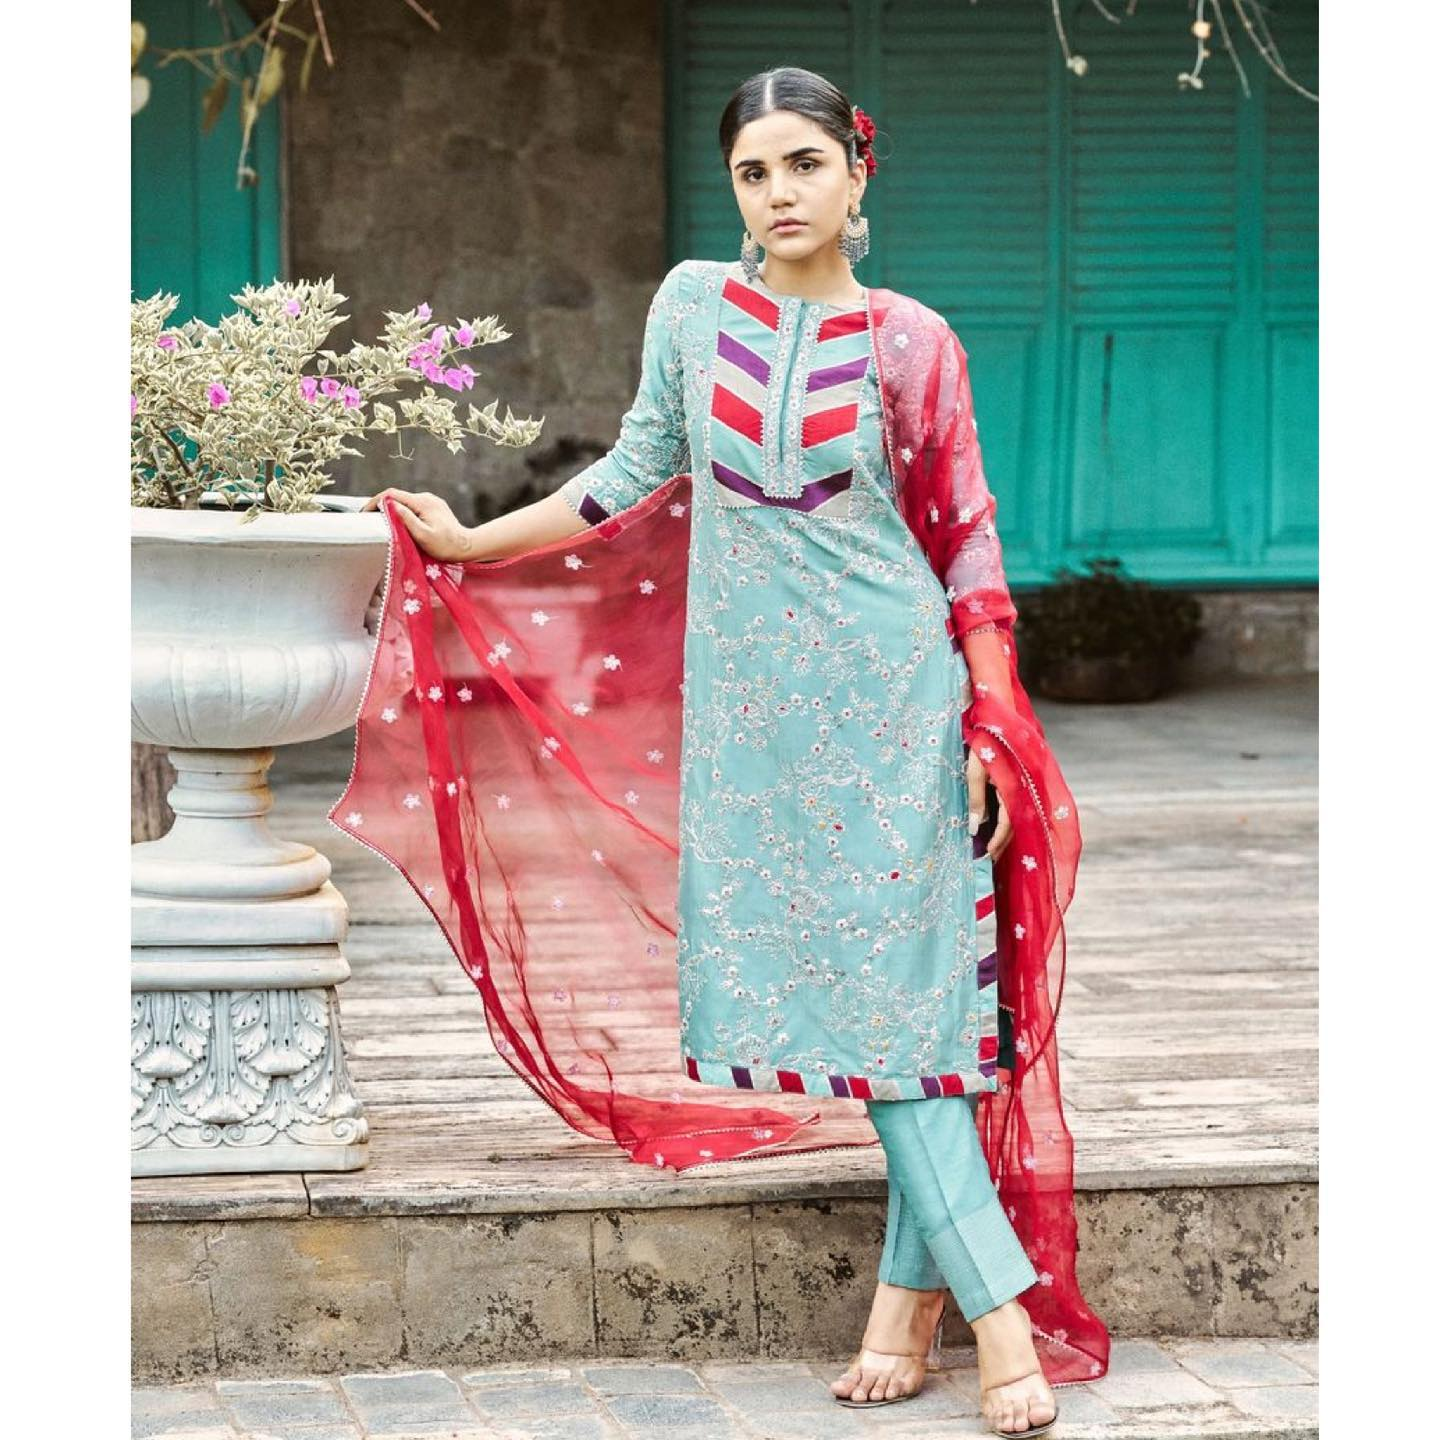 Phulwari . Seen here on Harshita is skyline blue kurta set with patchwork detailing on the yoke and pita floral creepers all over the kurta. It's contrast berry red dupatta brings in lots of vibrancy perfect for summer weddings.  To shop our new collection Phulwari DM  or Whatsapp  on +91 6302 878 533 2021-05-04